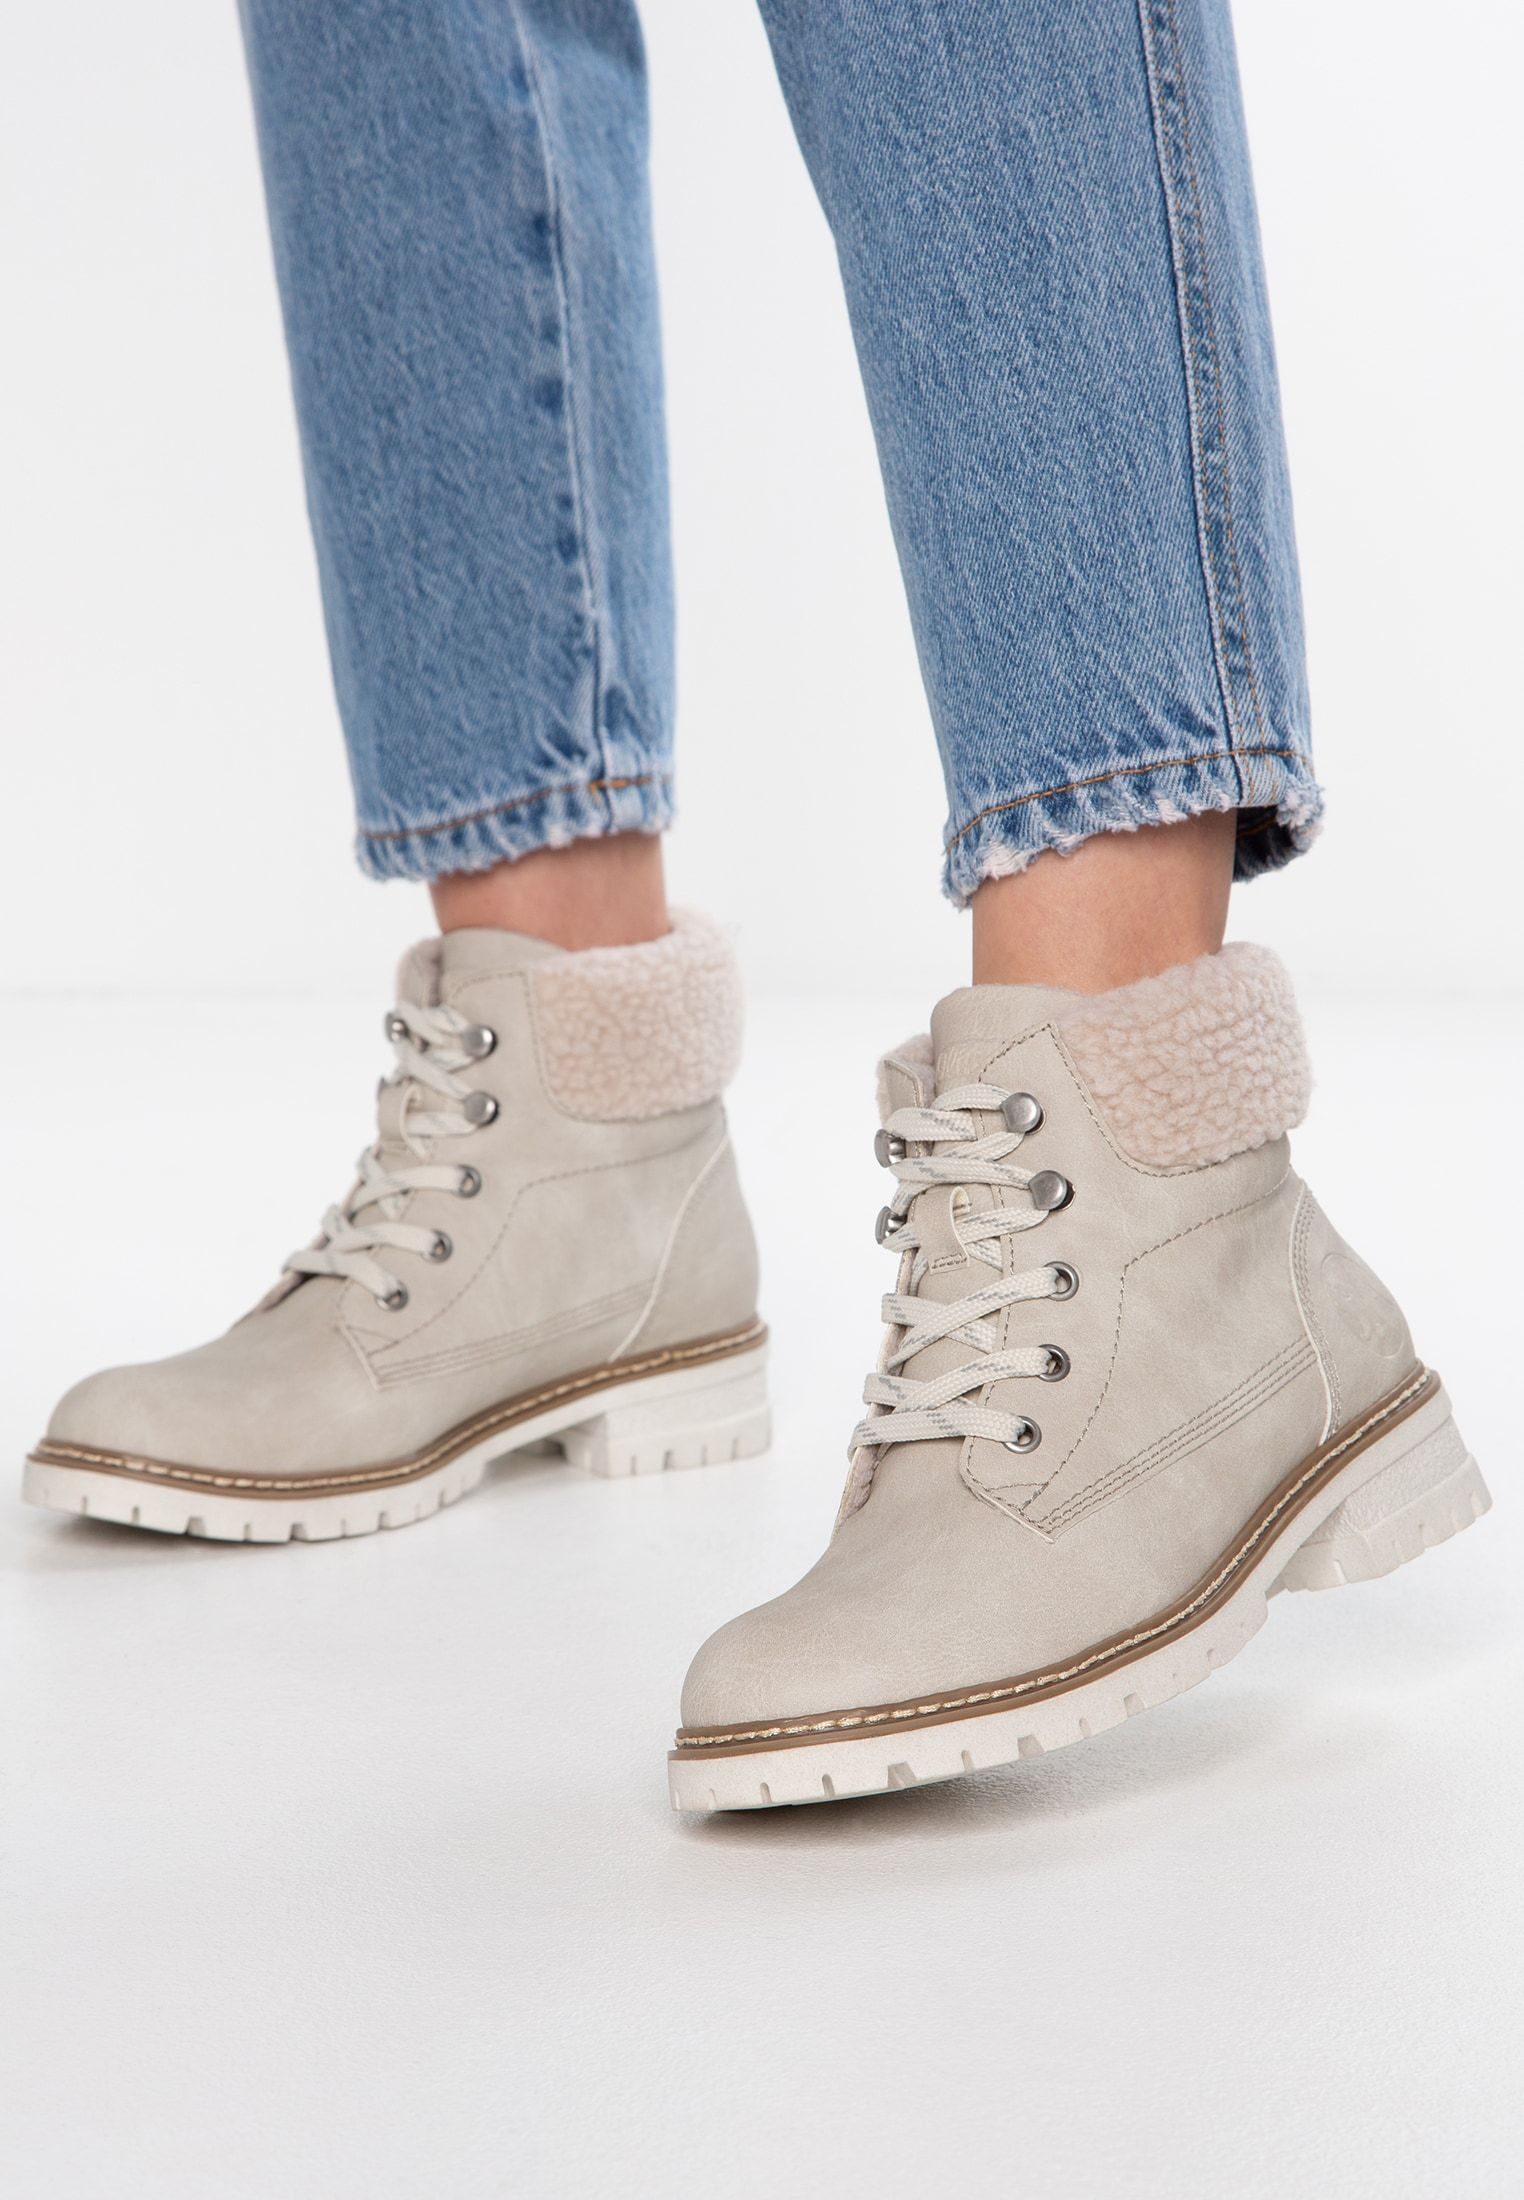 super popular 528df 0c08a Ankle boots - ice | Buy | Boots, Ankle boots, Ankle